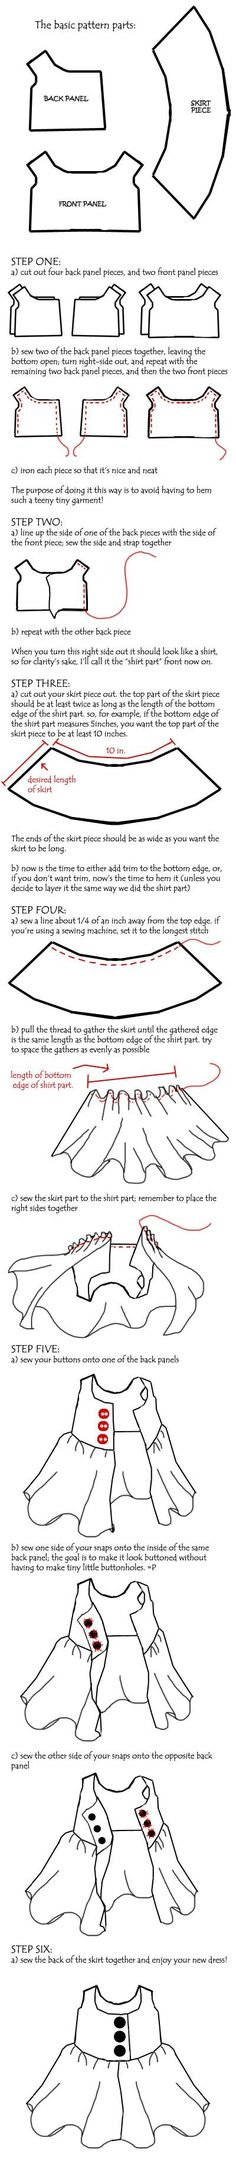 Plushie Dress Tutorial by ~onetruetree on deviantART